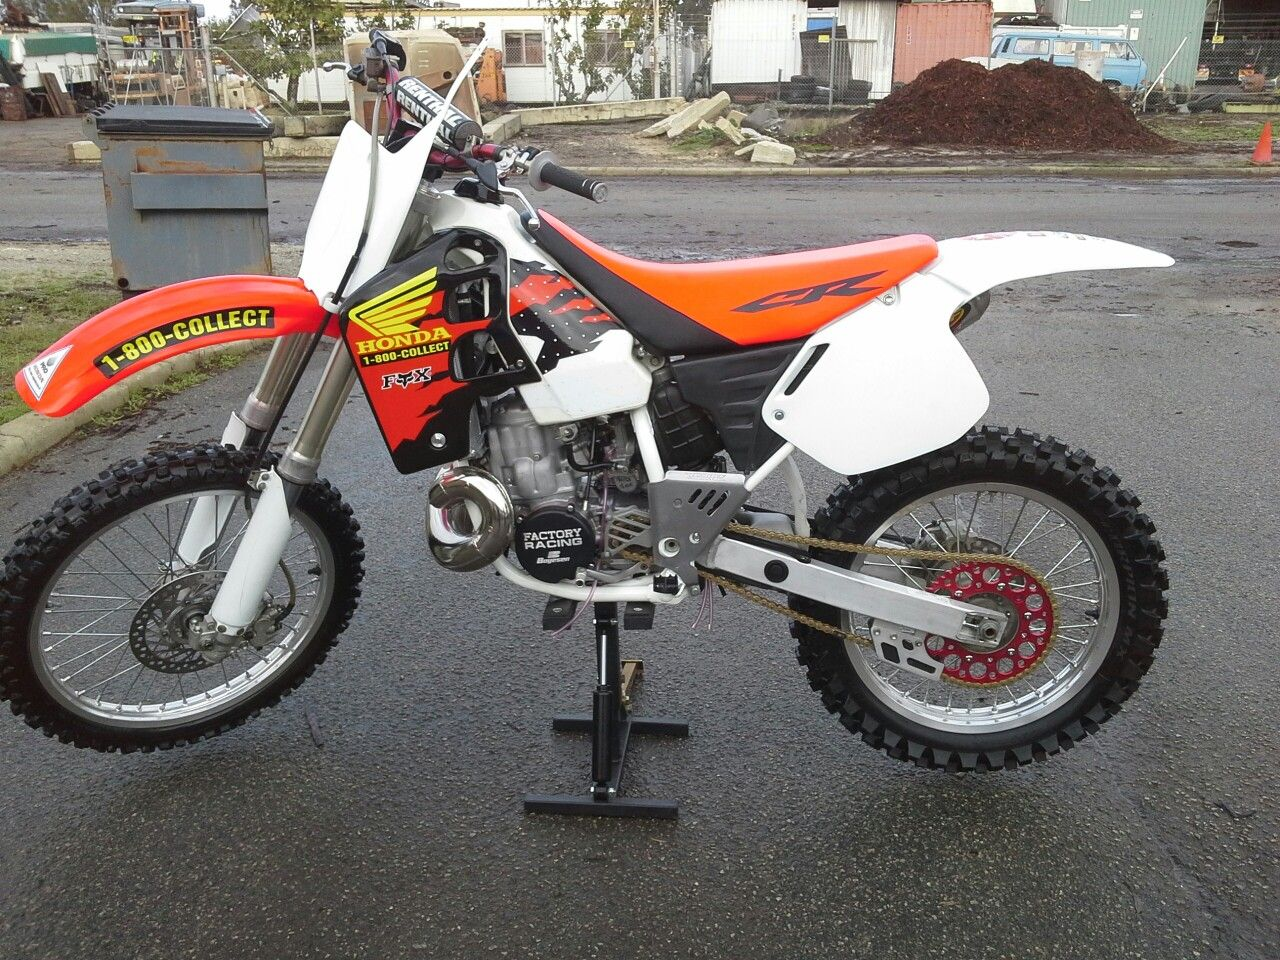 Honda CR 500 '98 | Honda cr, Dirtbikes, Honda on craigslist honda cr 500, 86 honda interceptor 500, 2000 honda cr 500,